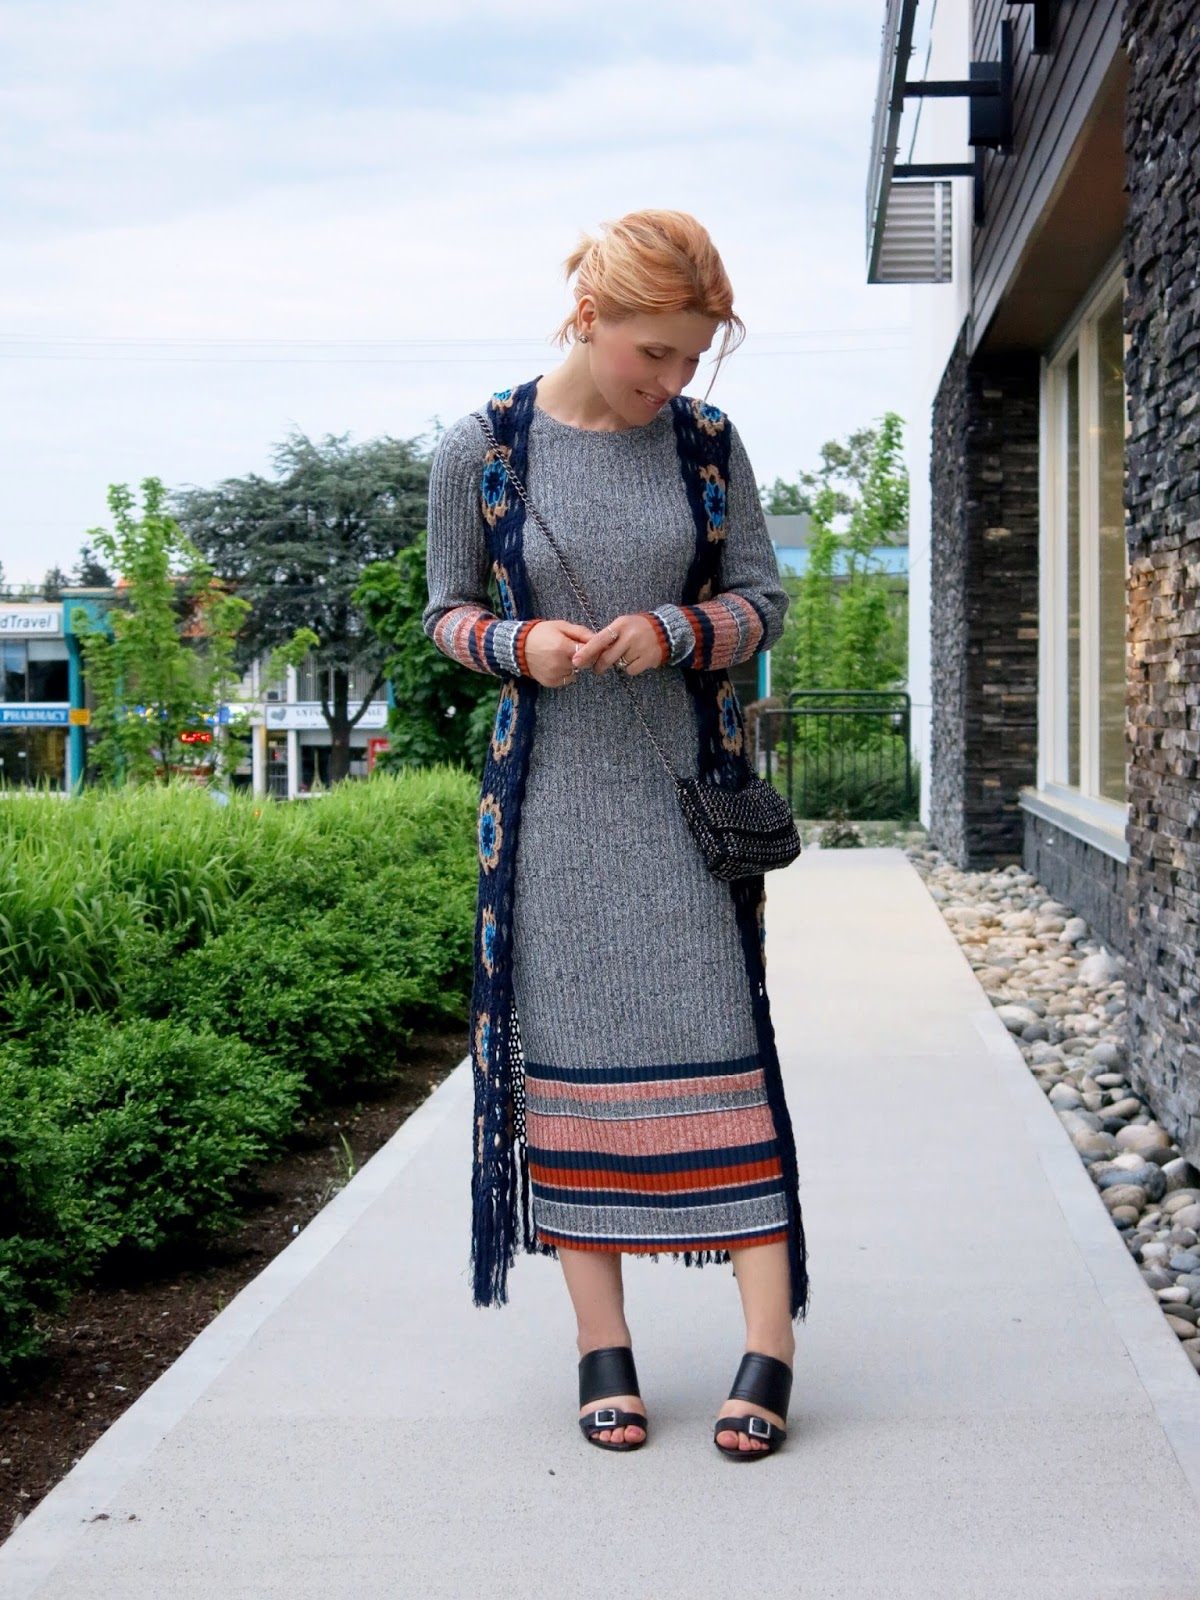 styling a sweater dress with a long crochet vest, wedge slides, and cross body bag